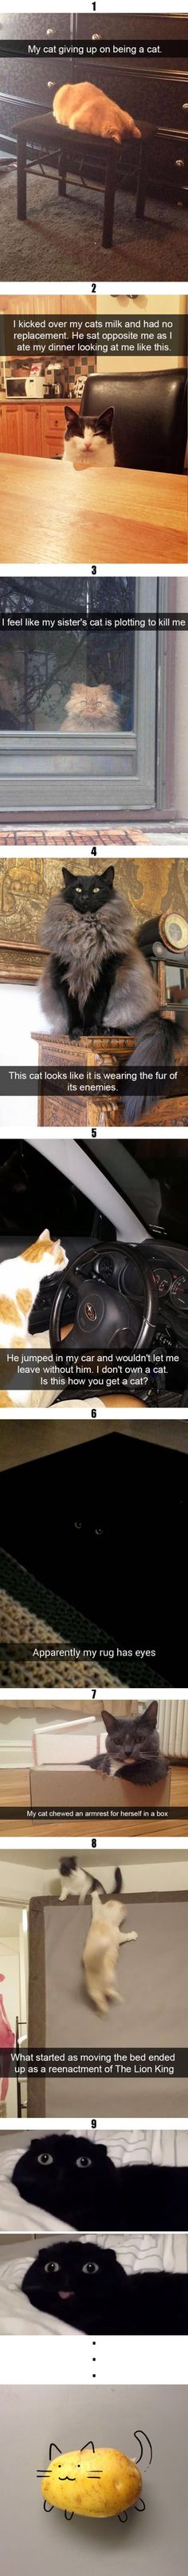 35 Funny cat memes with pictures that feature funny captions and remarks supplied by humans. Scanning for a laugh? Get a looks at these funny cat memes that deal among all kinds of funny topics. Funny Animal Memes, Cute Funny Animals, Funny Animal Pictures, Cute Baby Animals, Funny Cute, Cute Cats, Funny Memes, Hilarious, Memes Humor